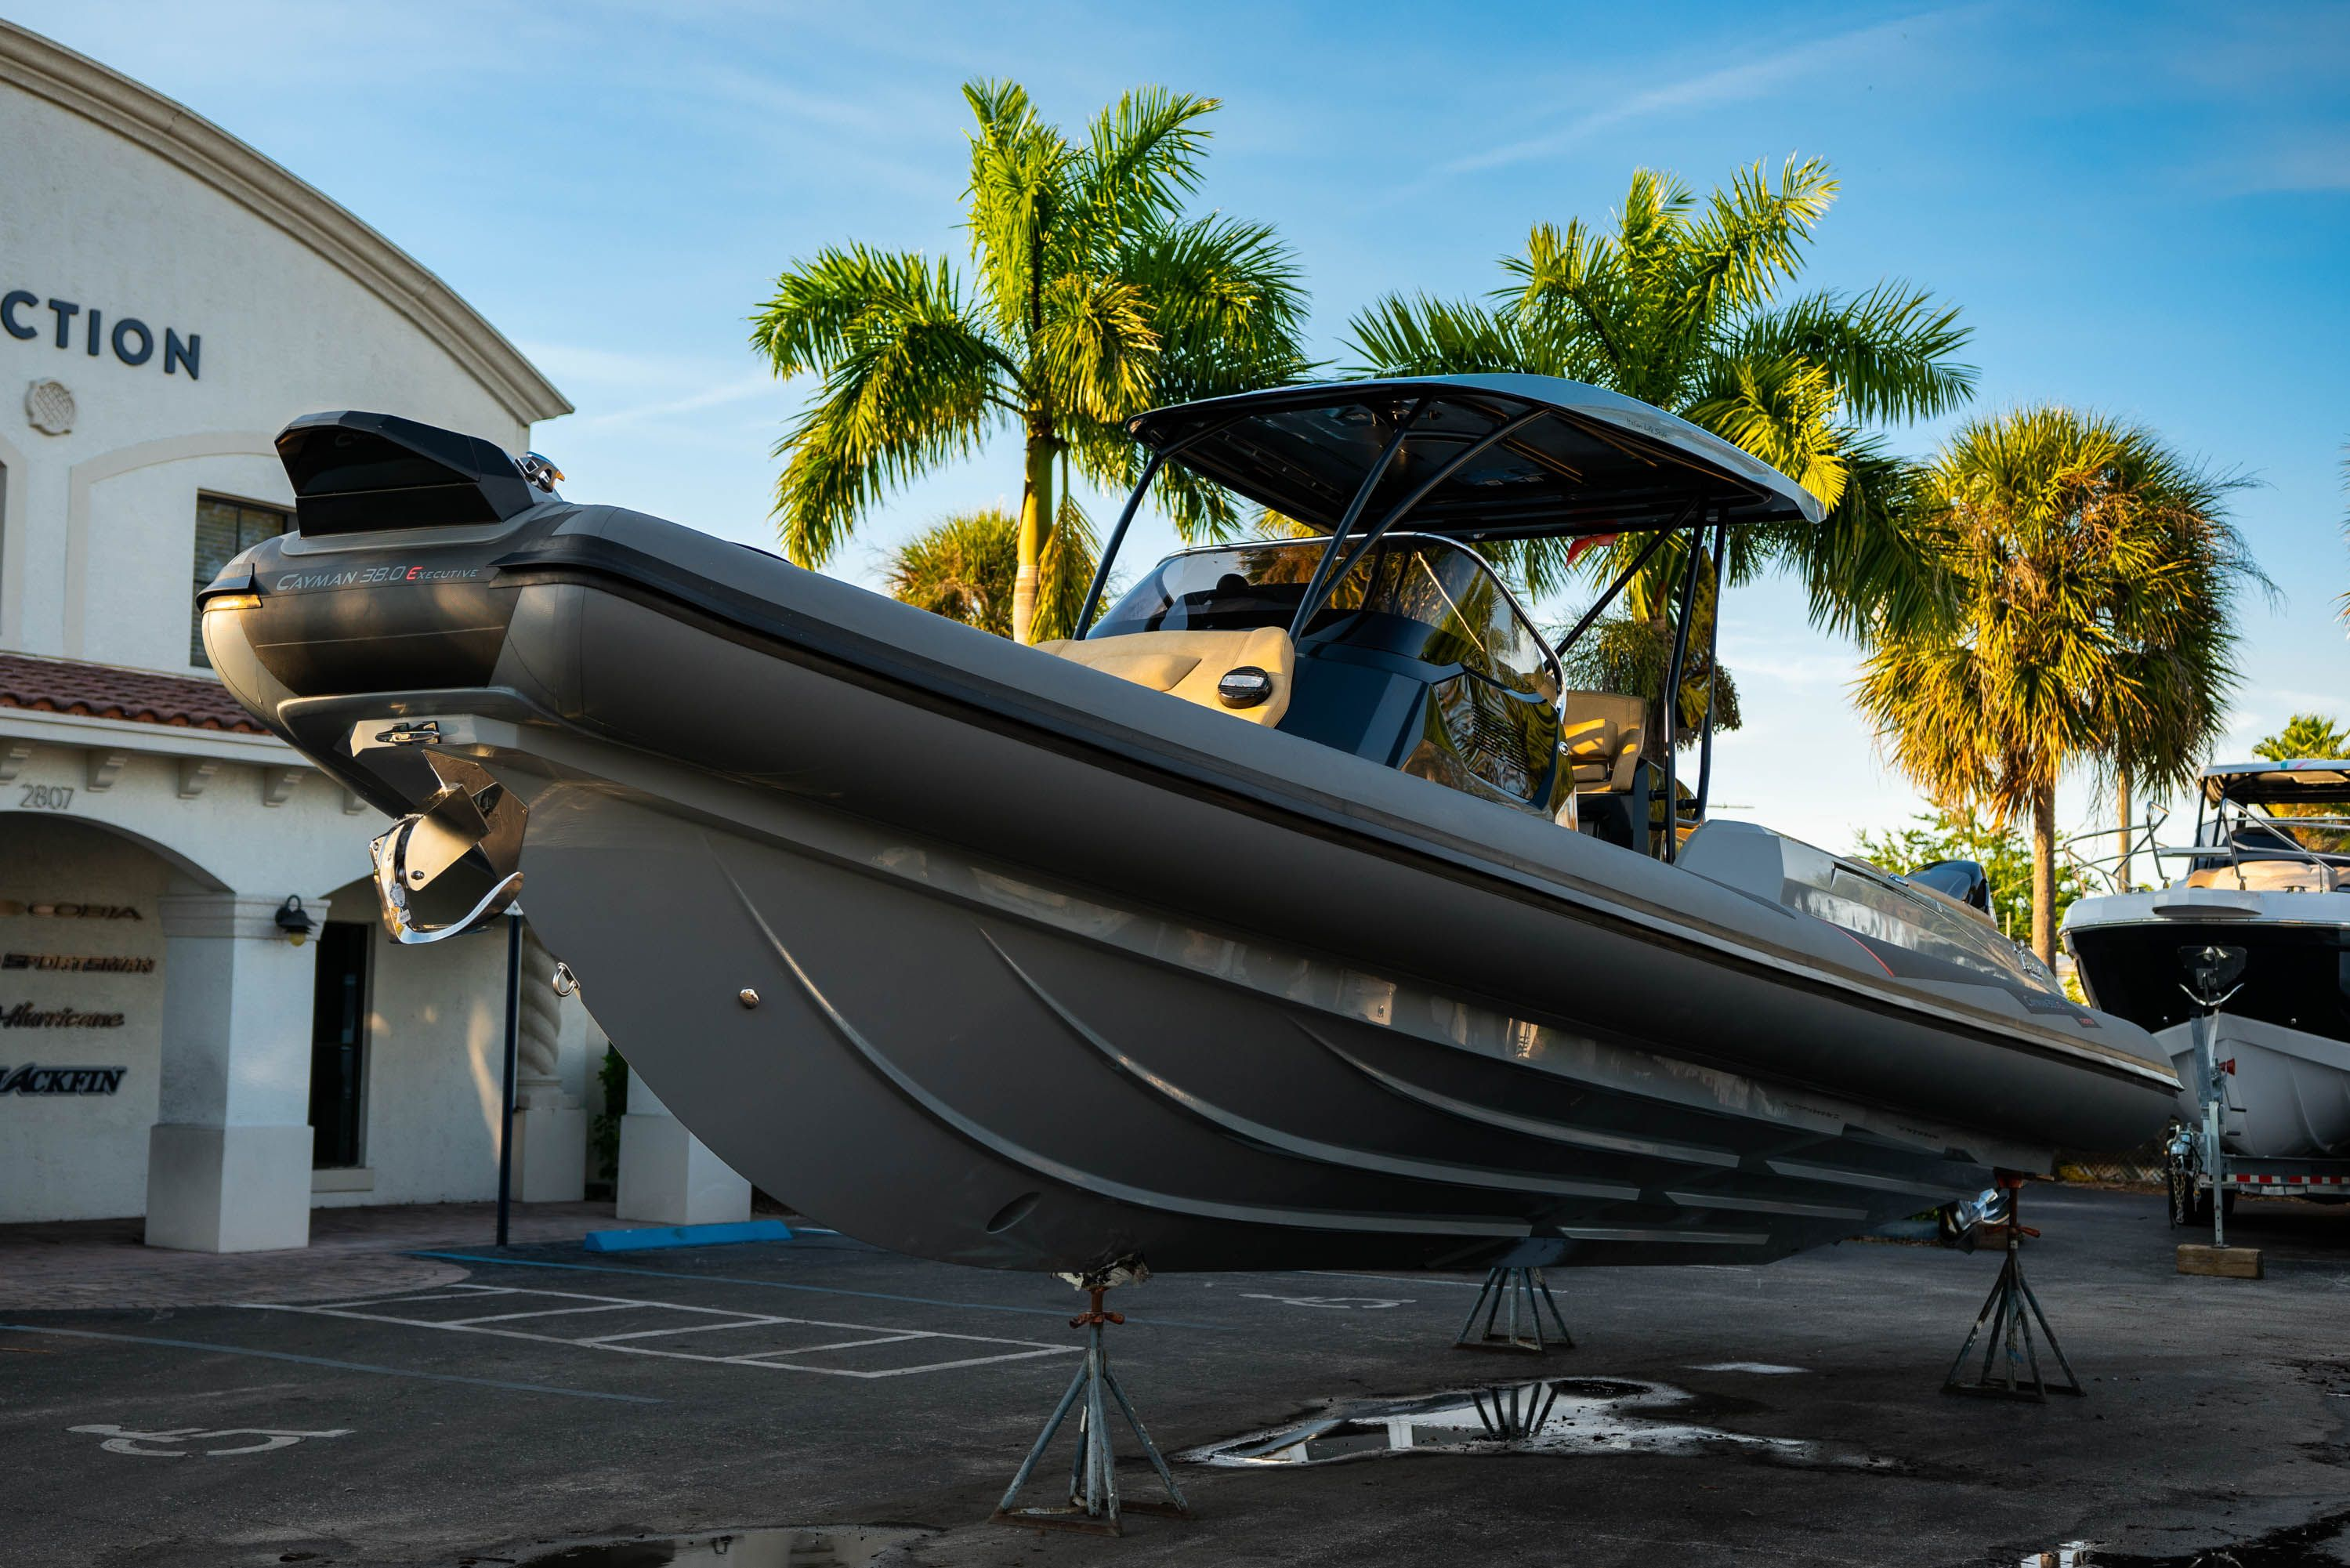 Thumbnail 8 for New 2019 Ranieri Cayman 38 Executive boat for sale in West Palm Beach, FL